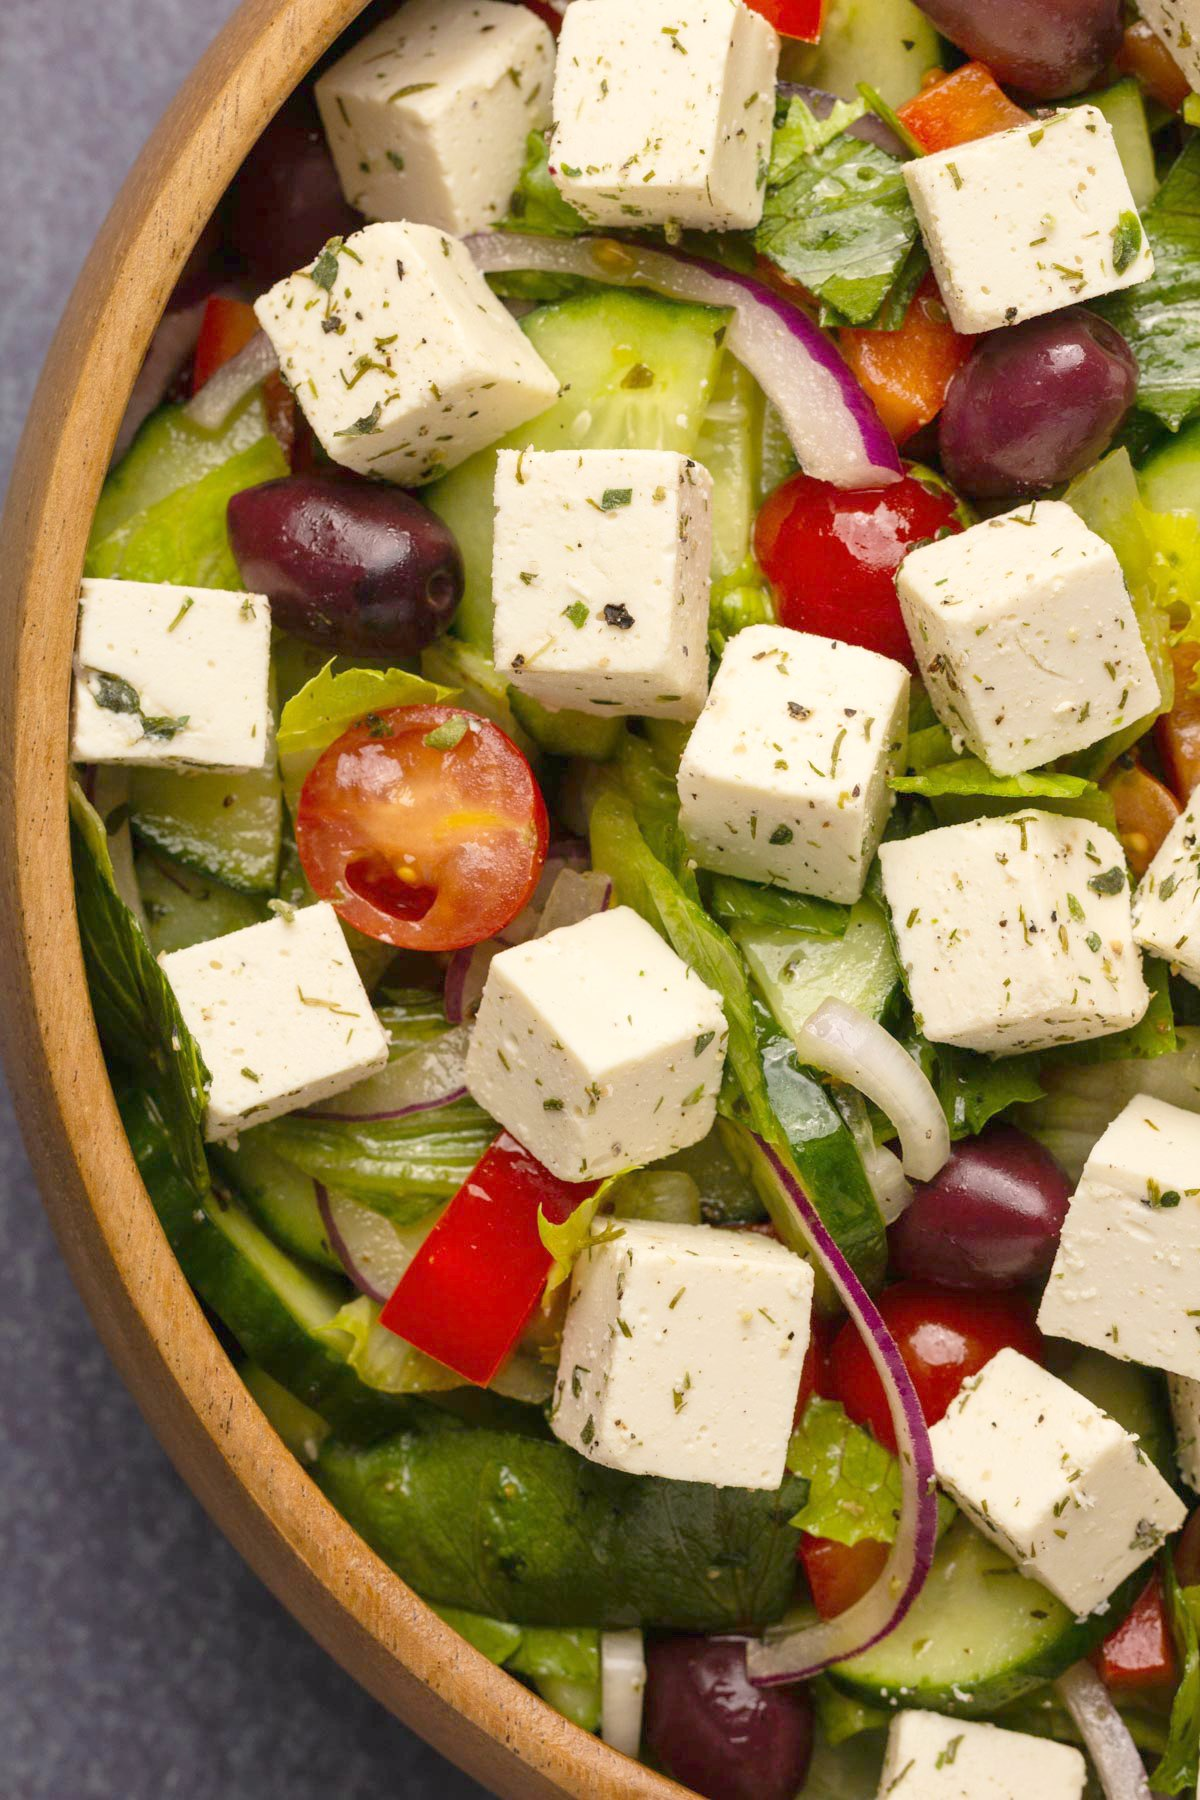 Vegan feta with oregano and dill on top of a Greek salad.